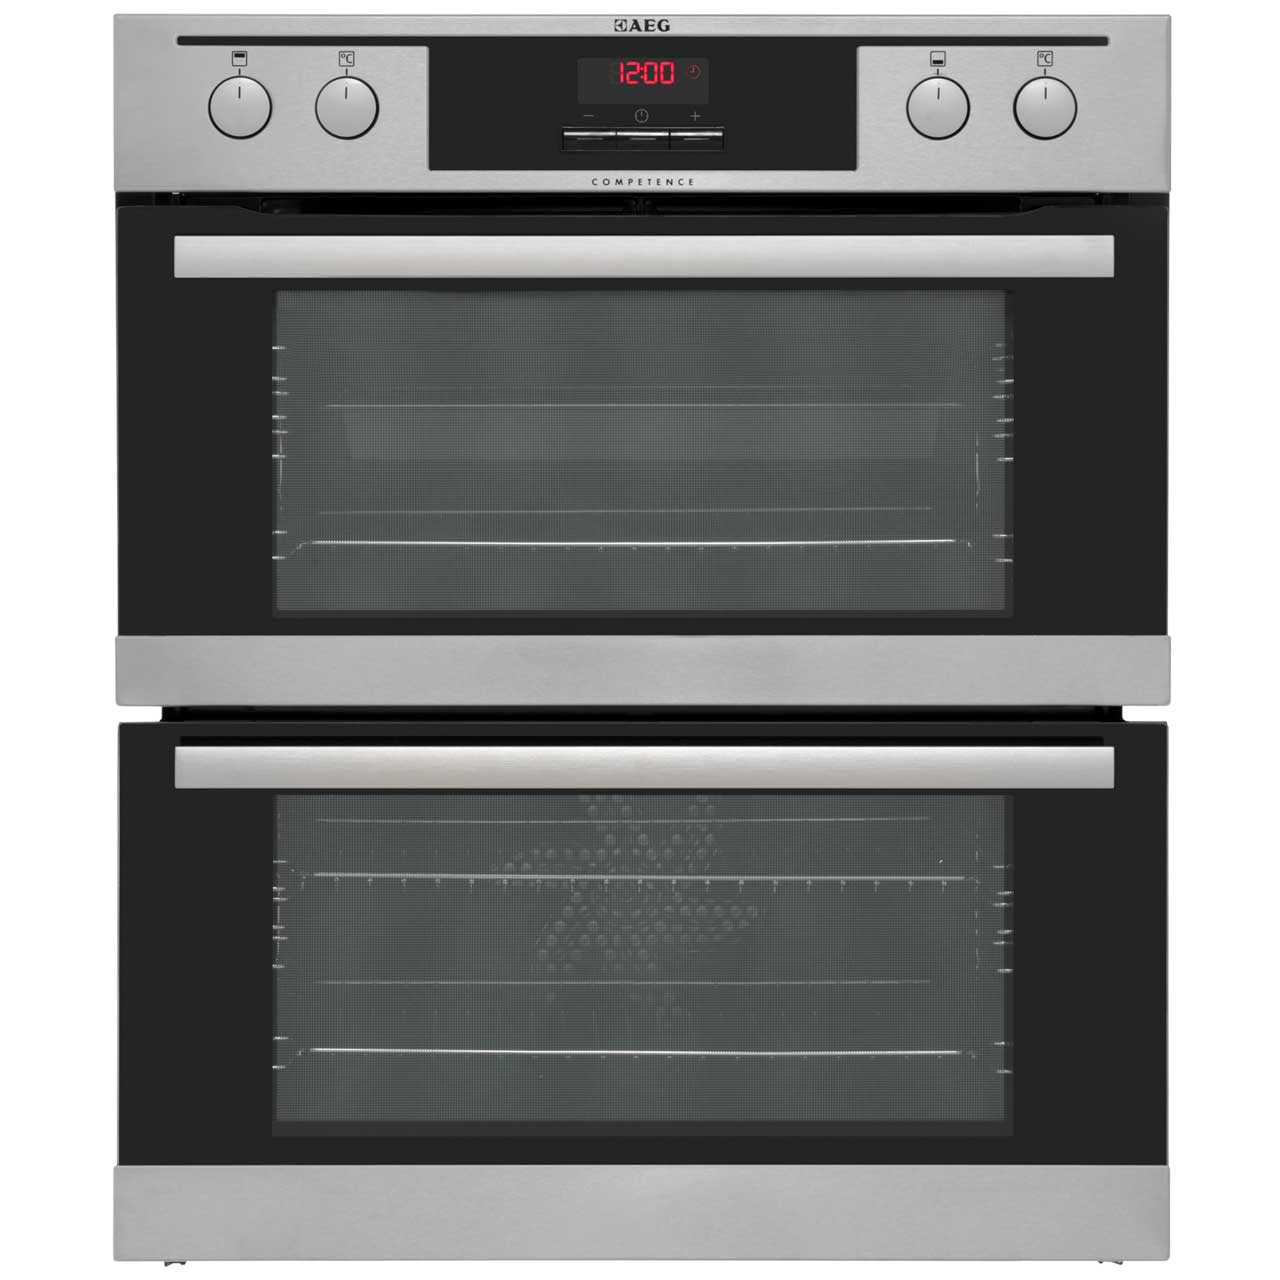 AEG Competence NC4013021M Built Under Double Oven in Stainless Steel